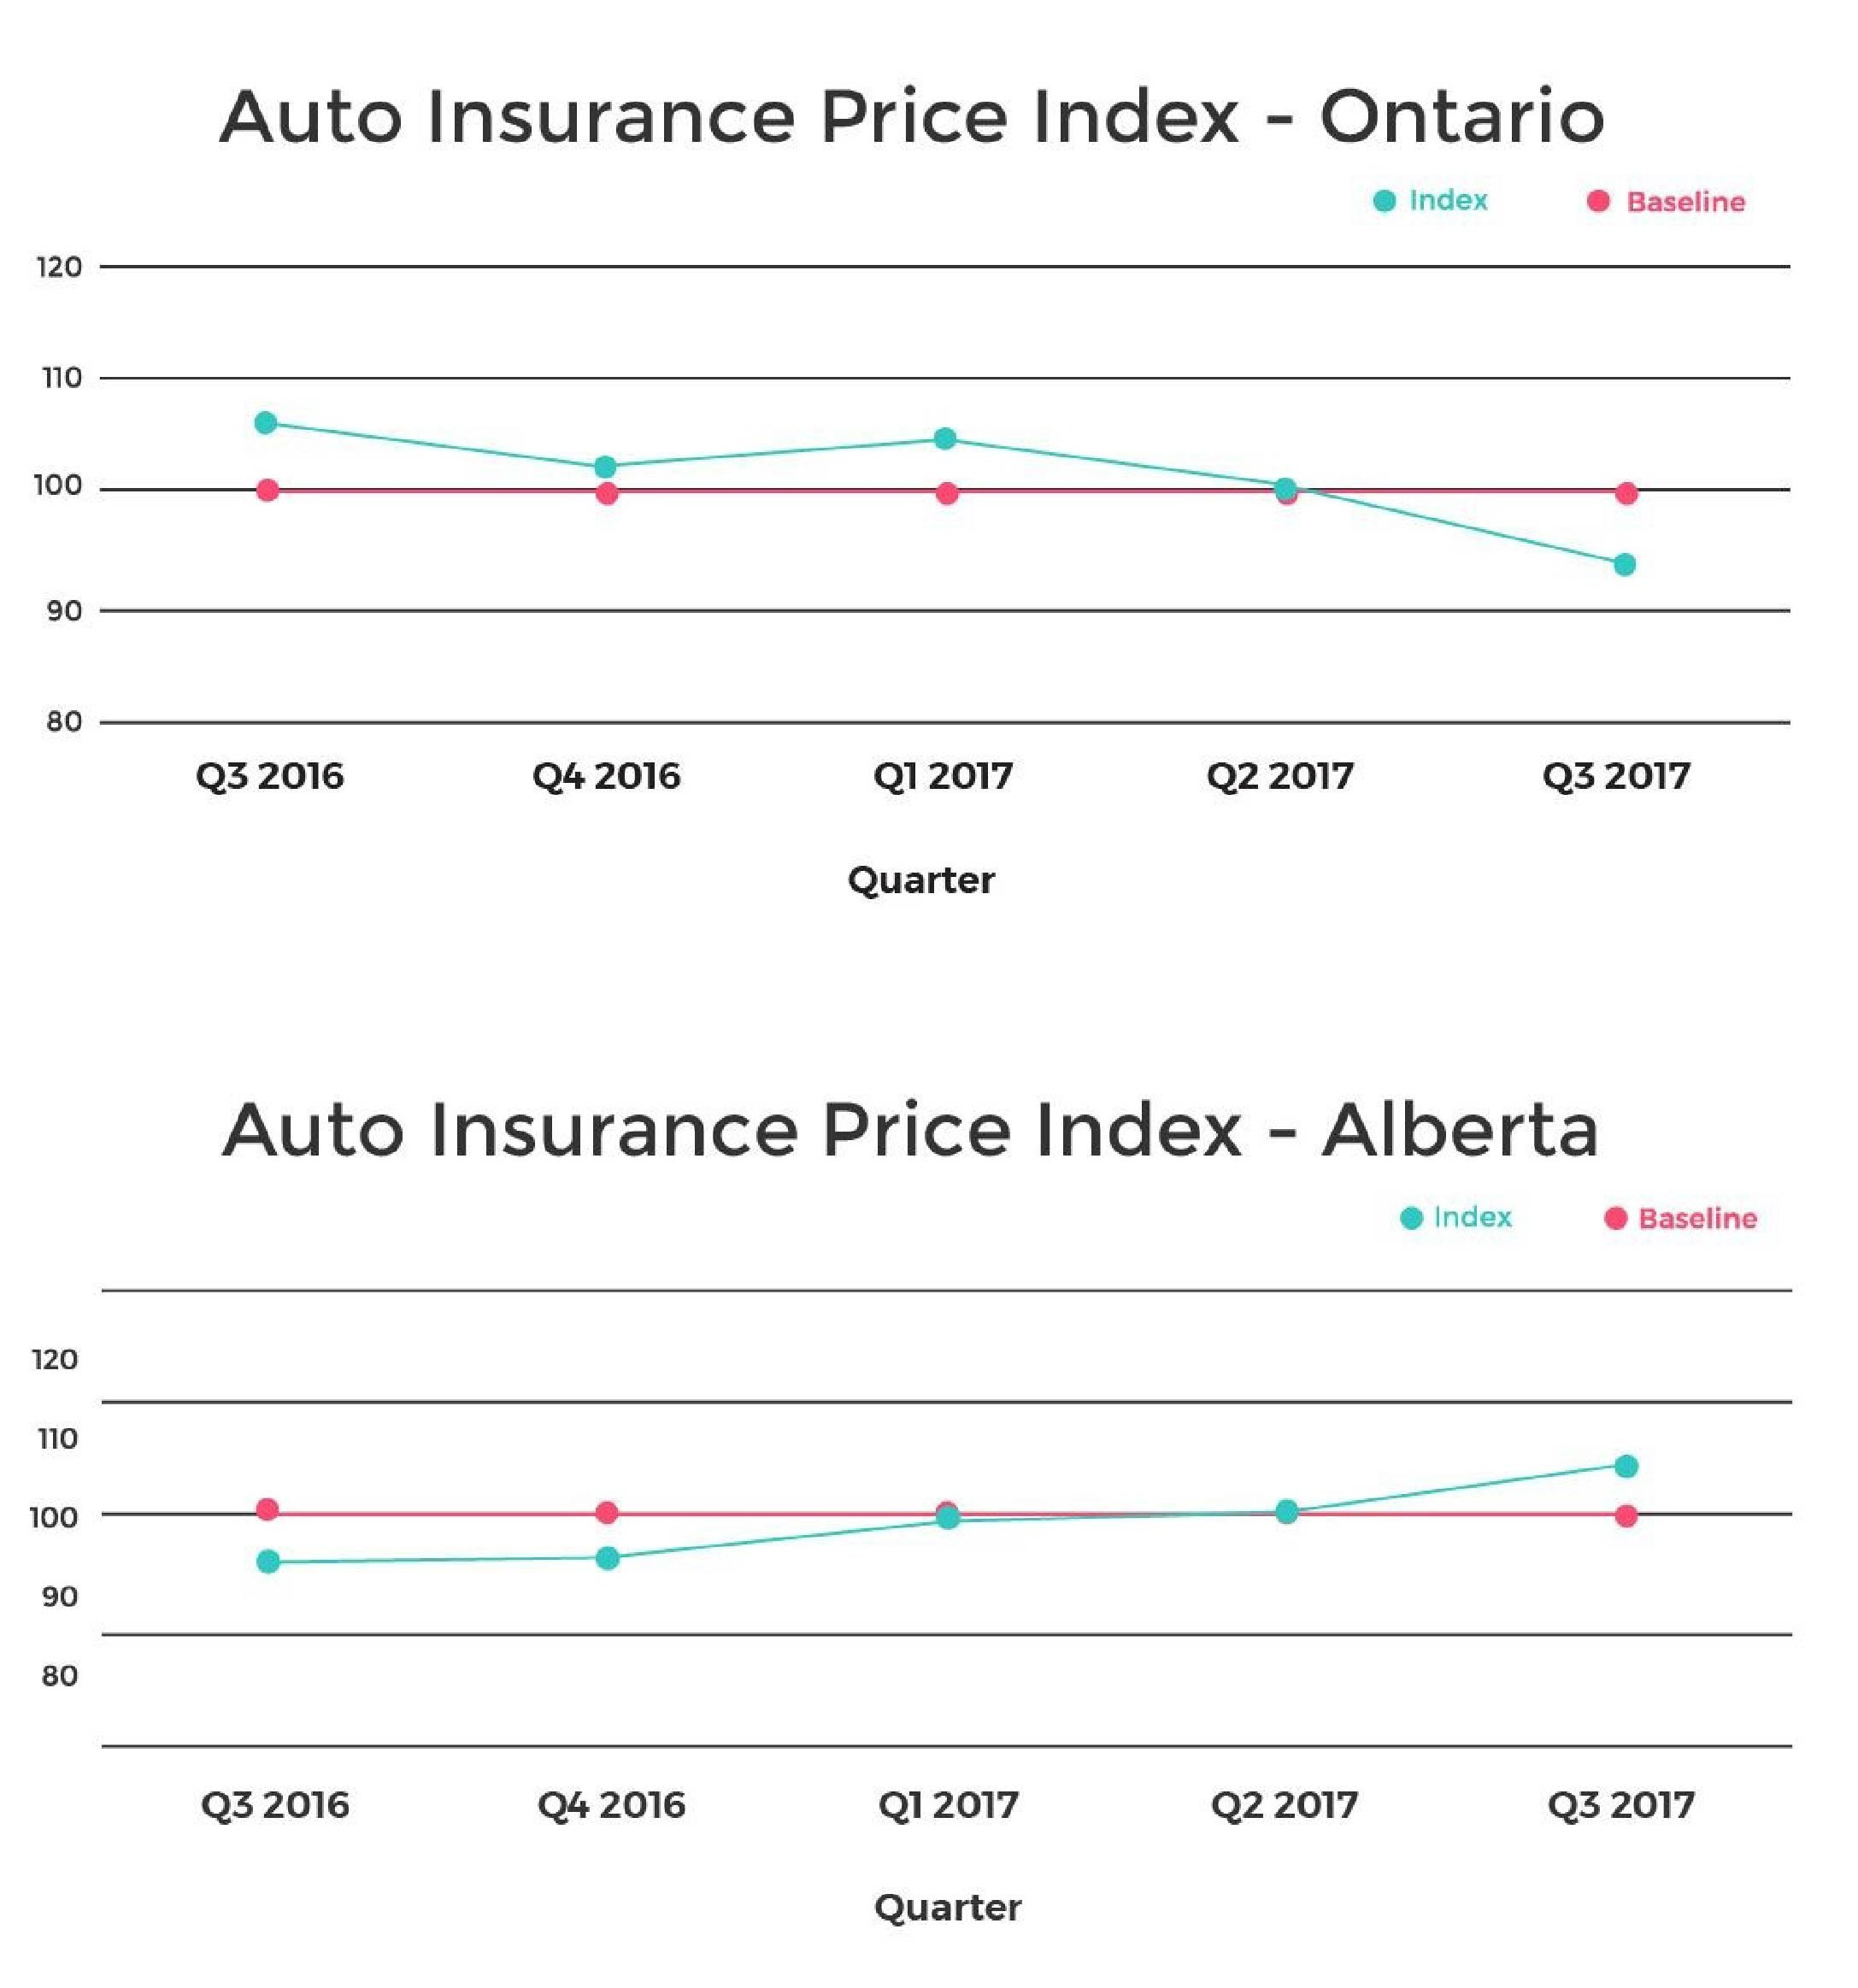 Auto Insurance Rates Dropping In Ontario, Rising In